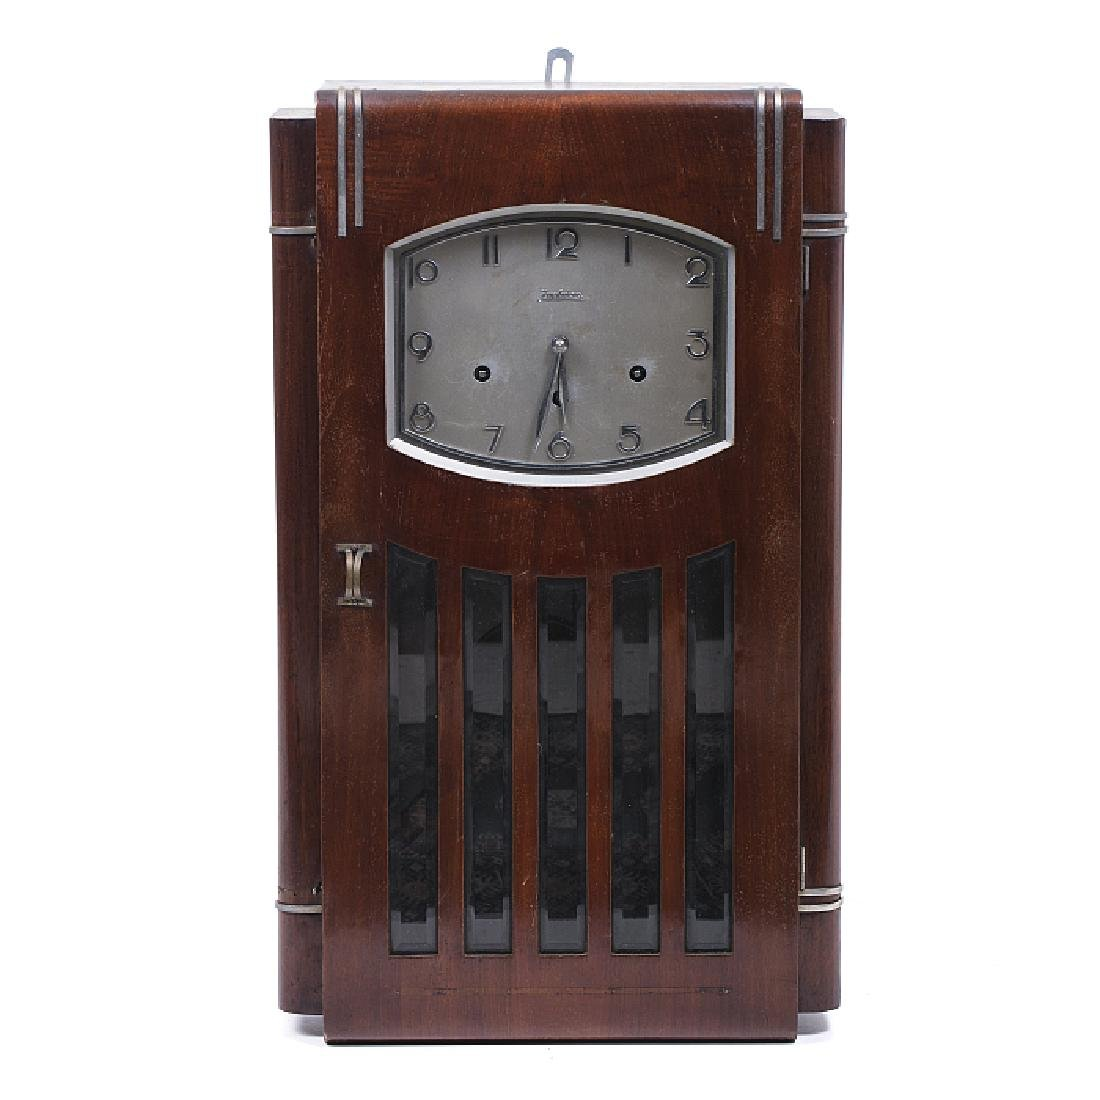 Art Deco wall clock, Reguladora